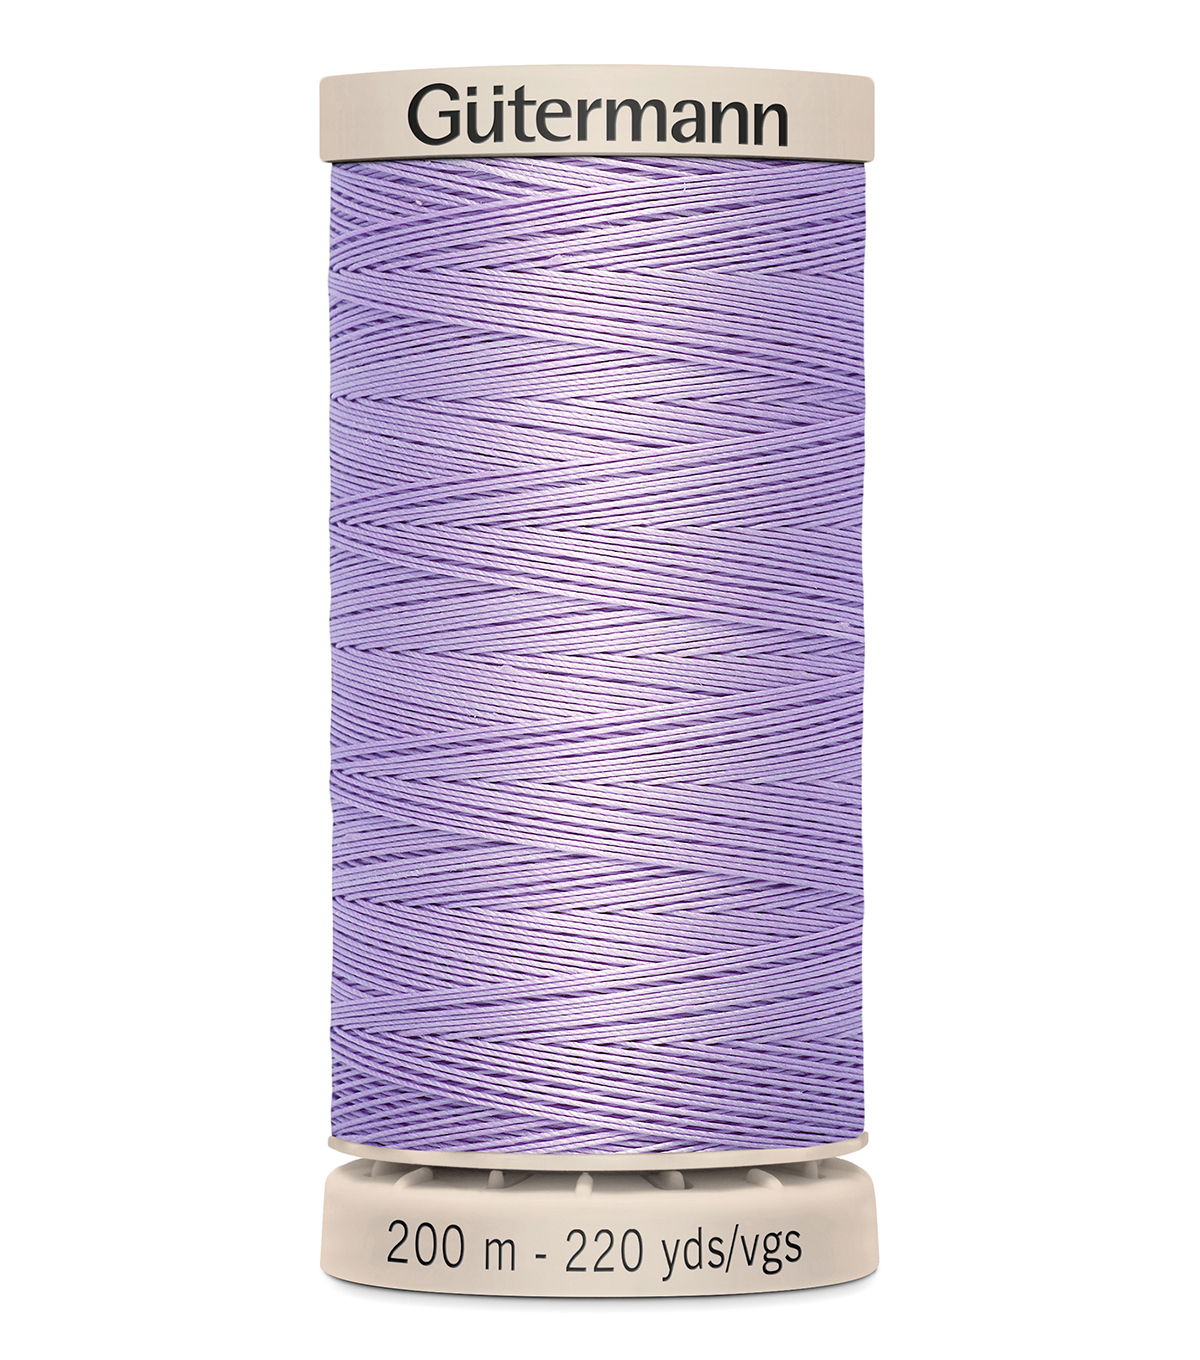 Gutermann Hand Quilting Thread 200 Meters (220 Yrds)-Primary, Dahlia #4226